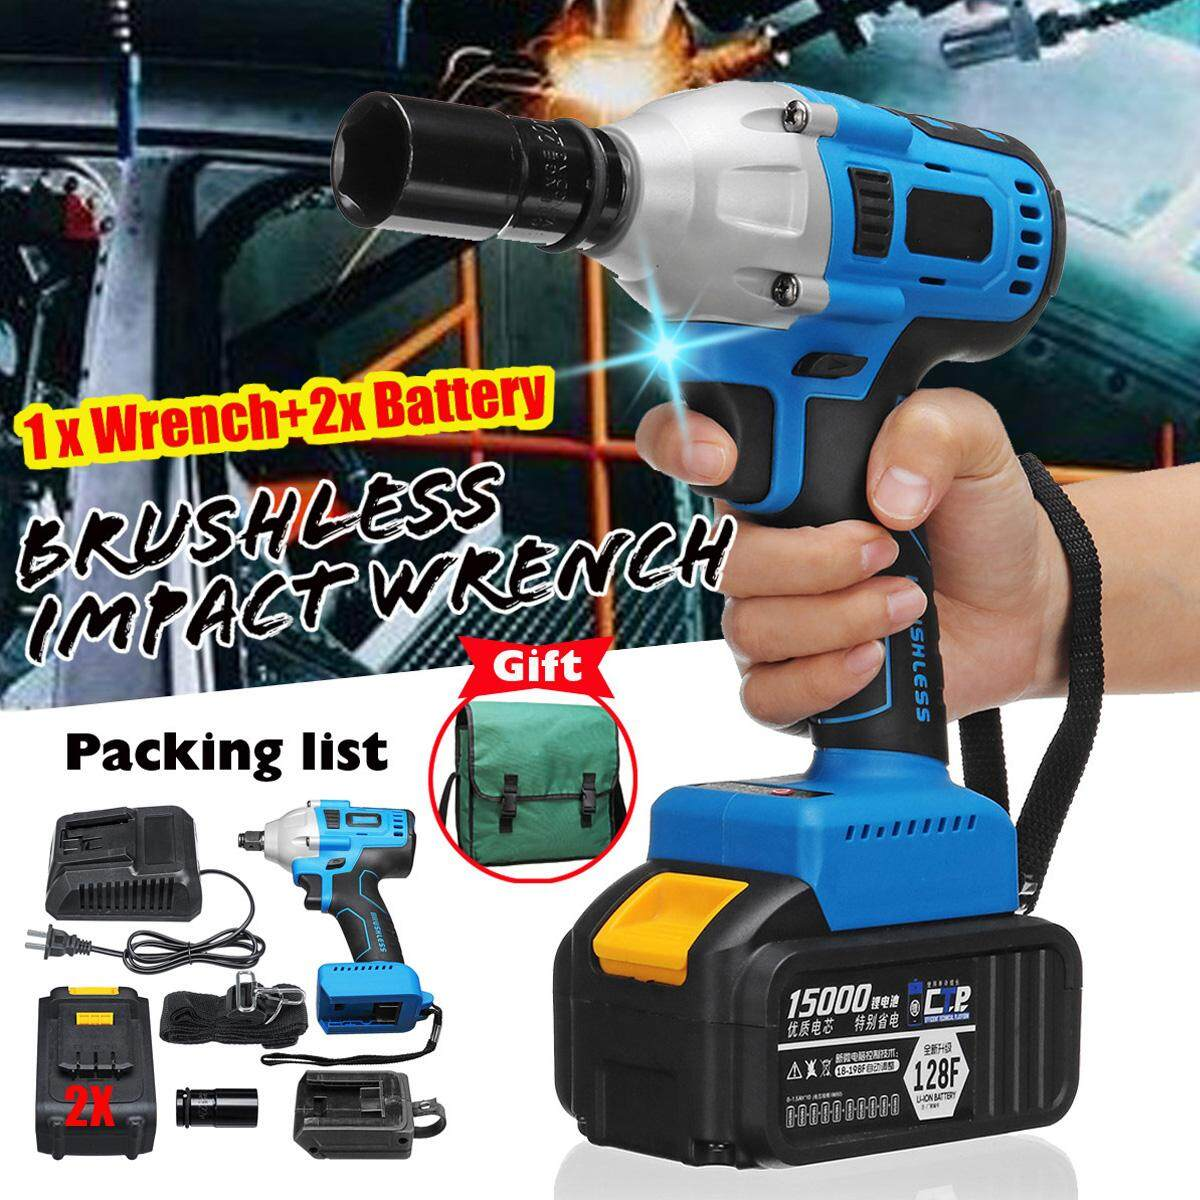 15000mAh Lithium-Ion battery 1/2 Bit Holder 340 N.m Brushless Impact Wrench